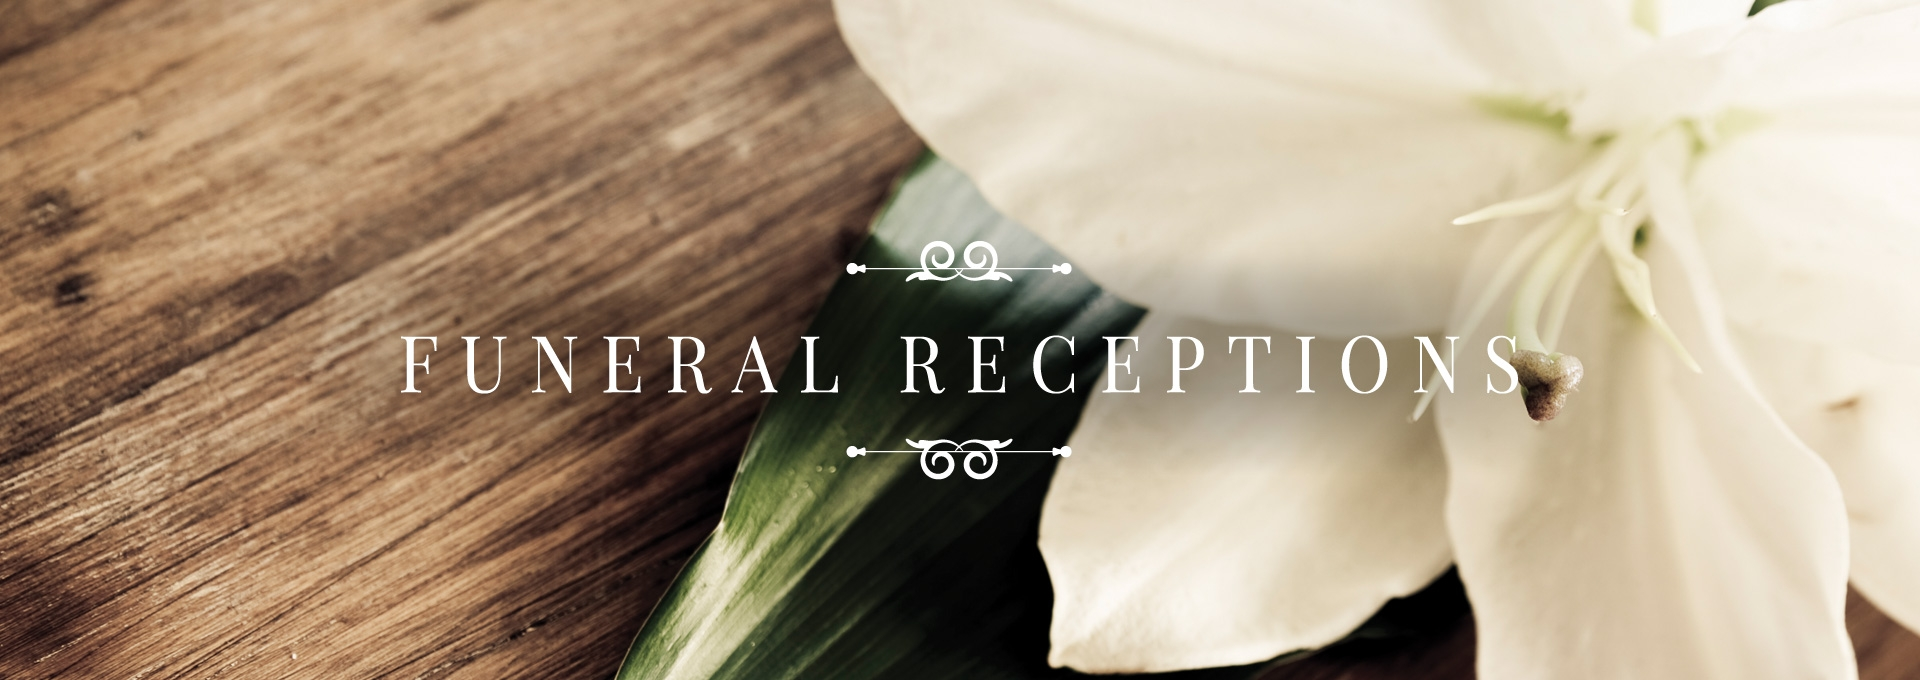 Funeral Receptions